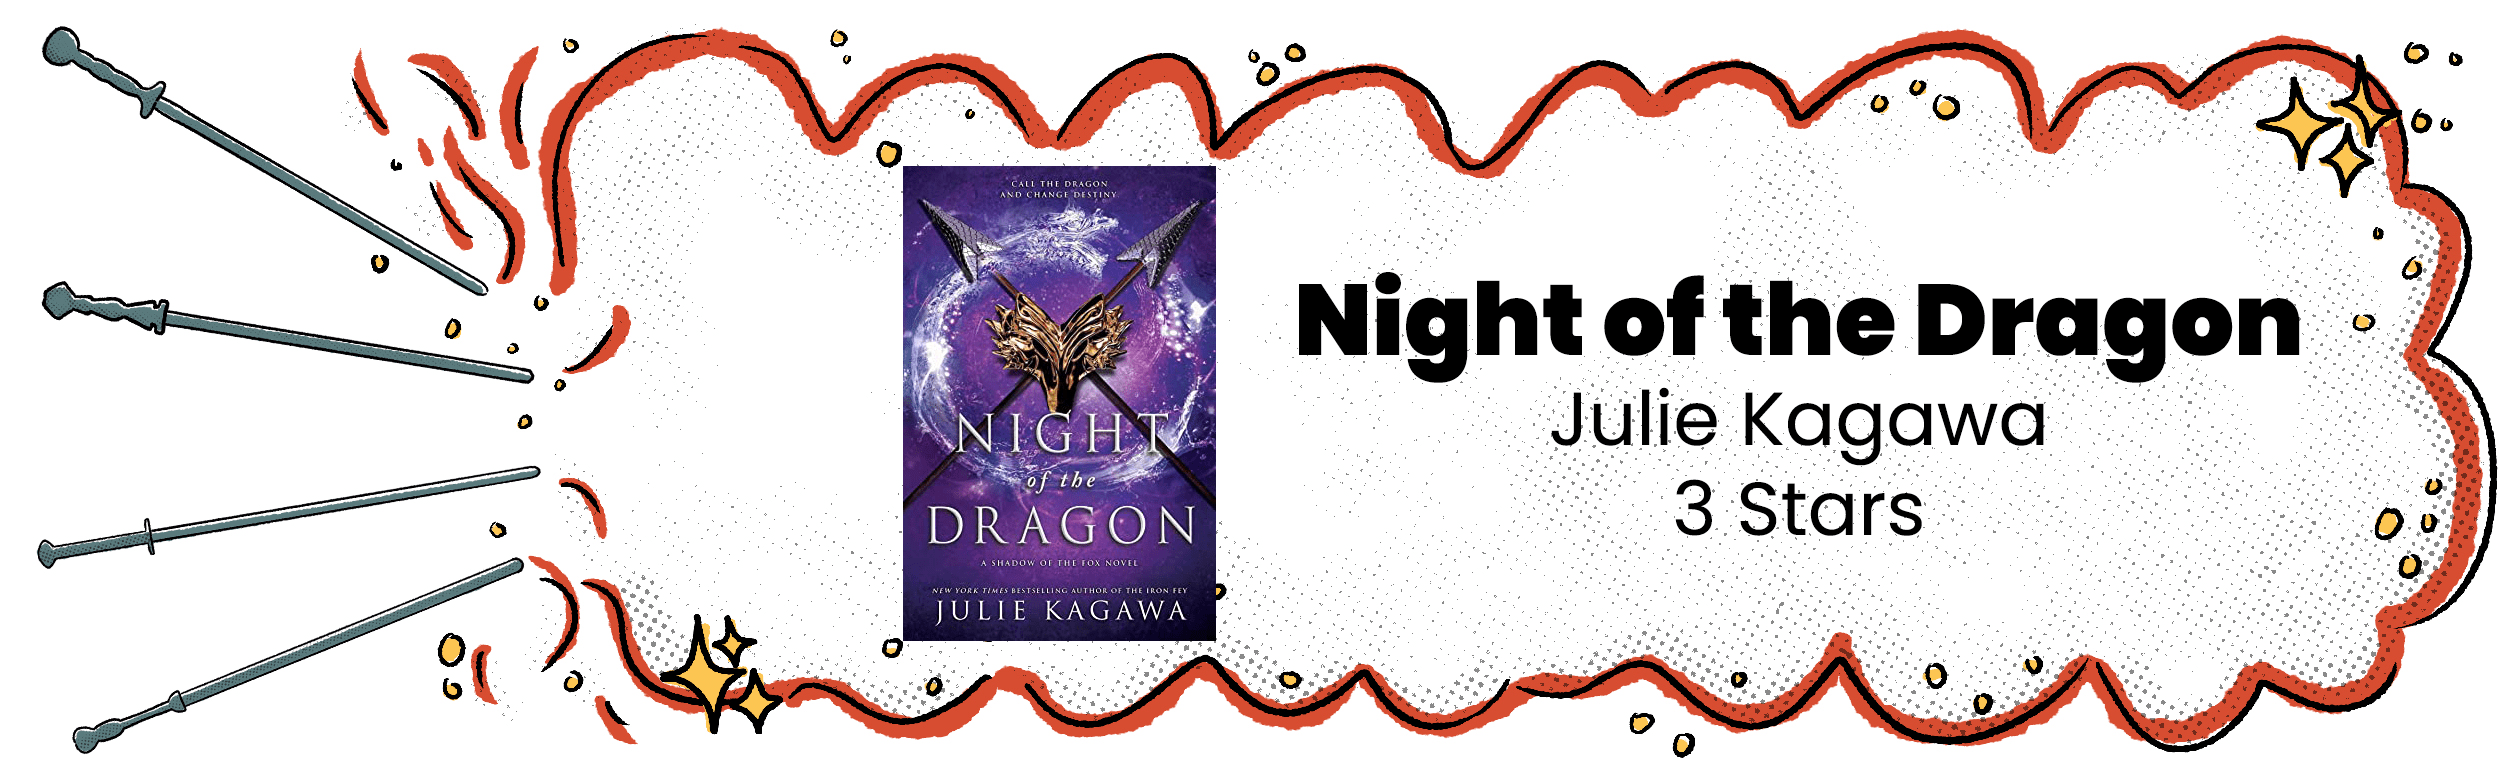 Night of the Dragon Review Banner with 3 Star Rating